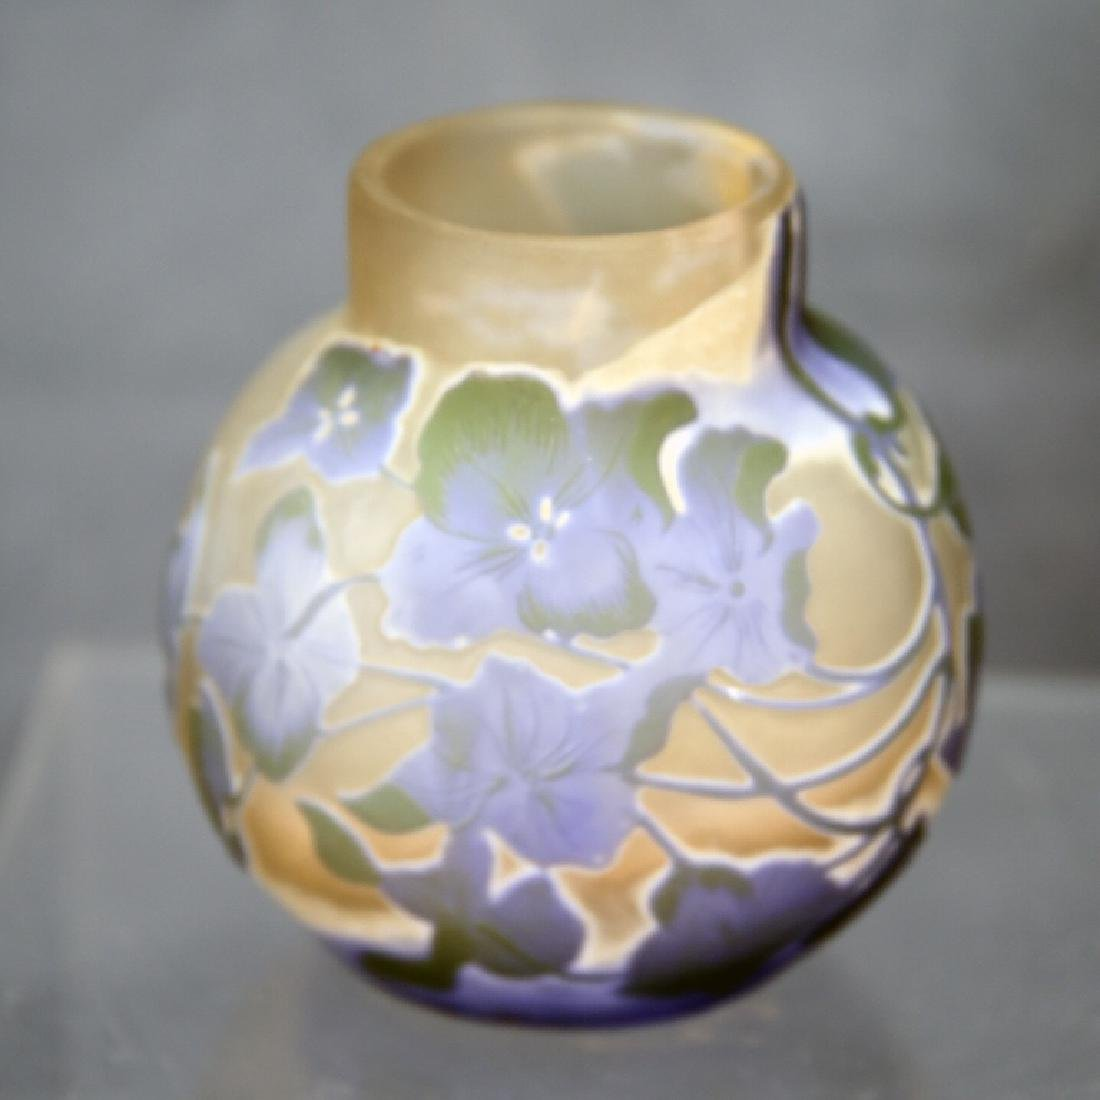 Cameo Glass Vase Signed Galle Lavender Floral